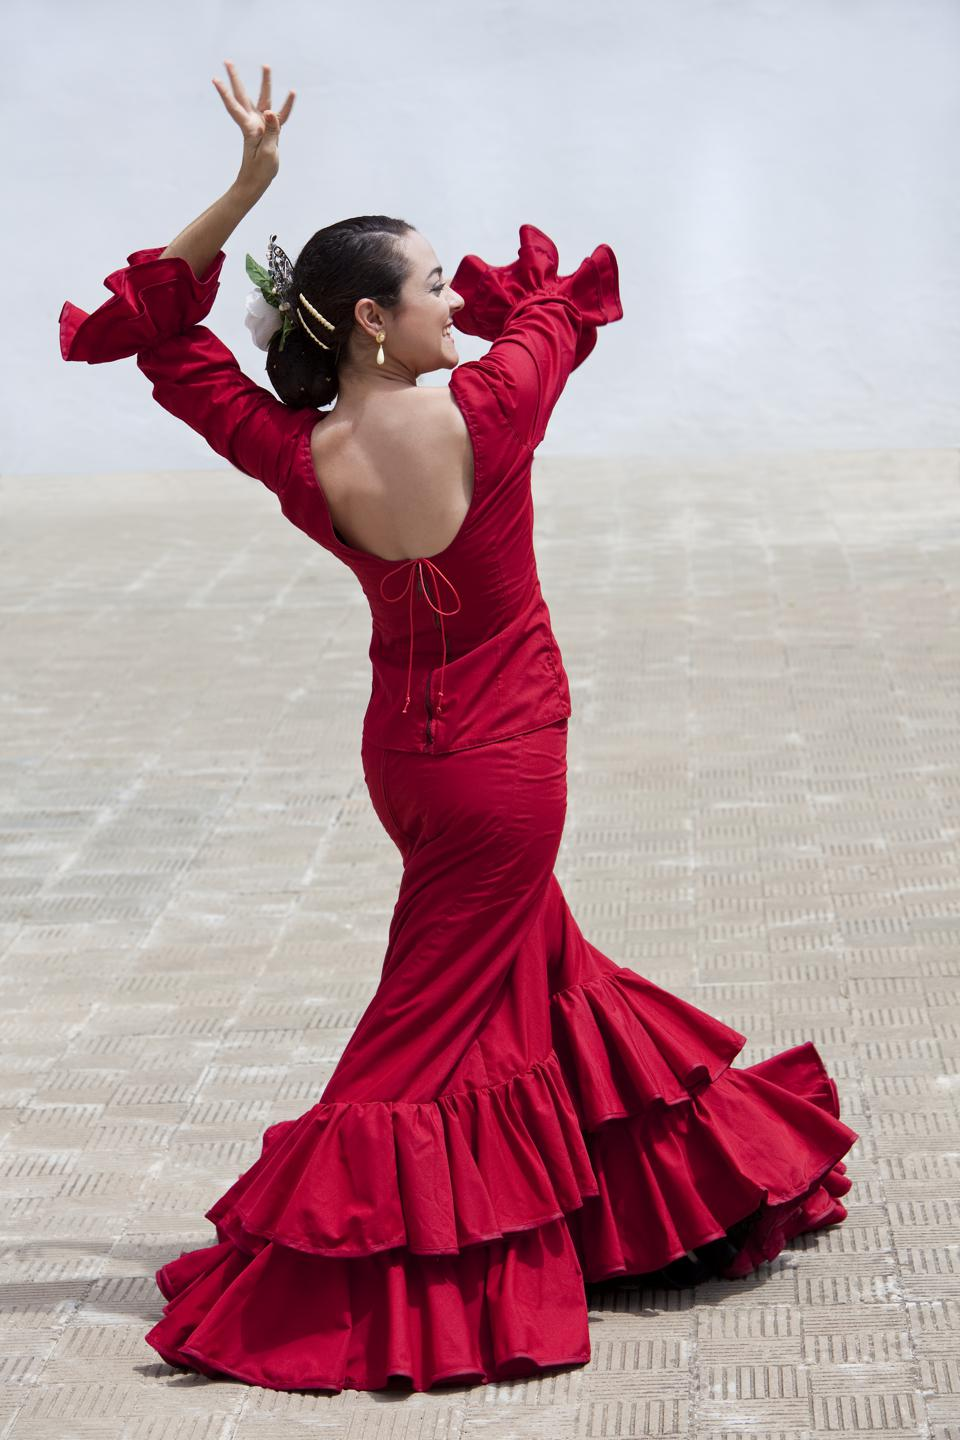 Woman Spanish Flamenco Dancer In Red Dress